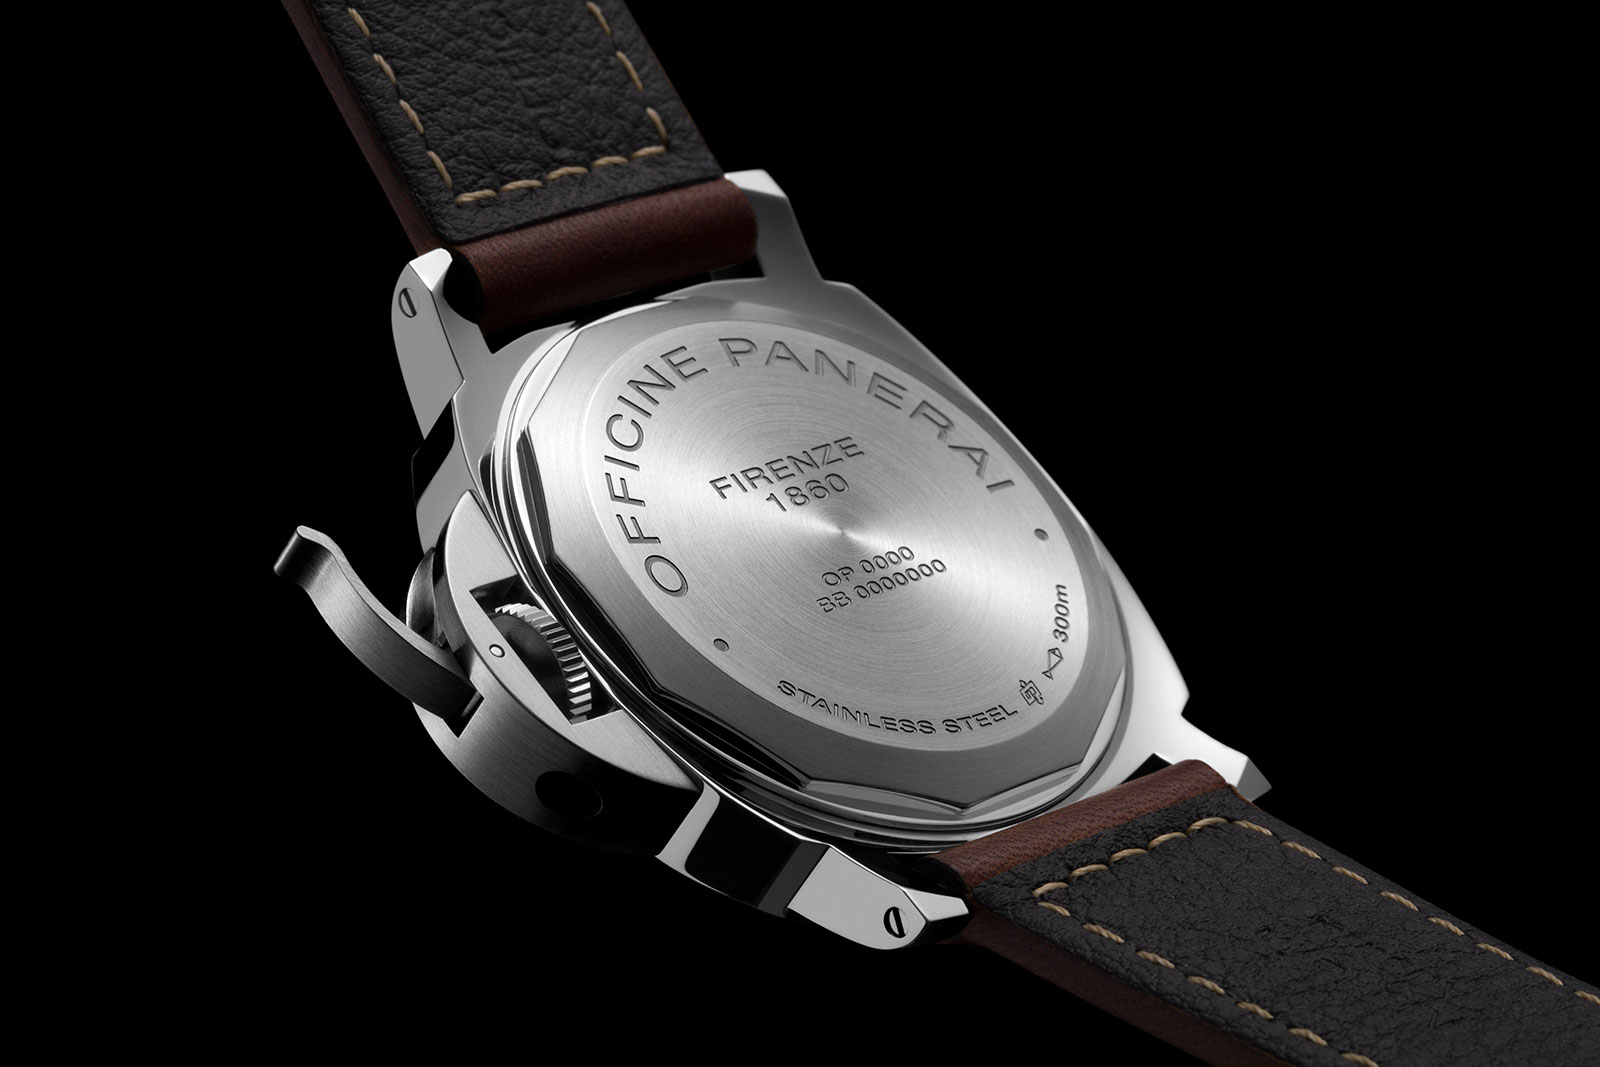 Panerai Luminor 8 Days Power Reserve PAM795 back